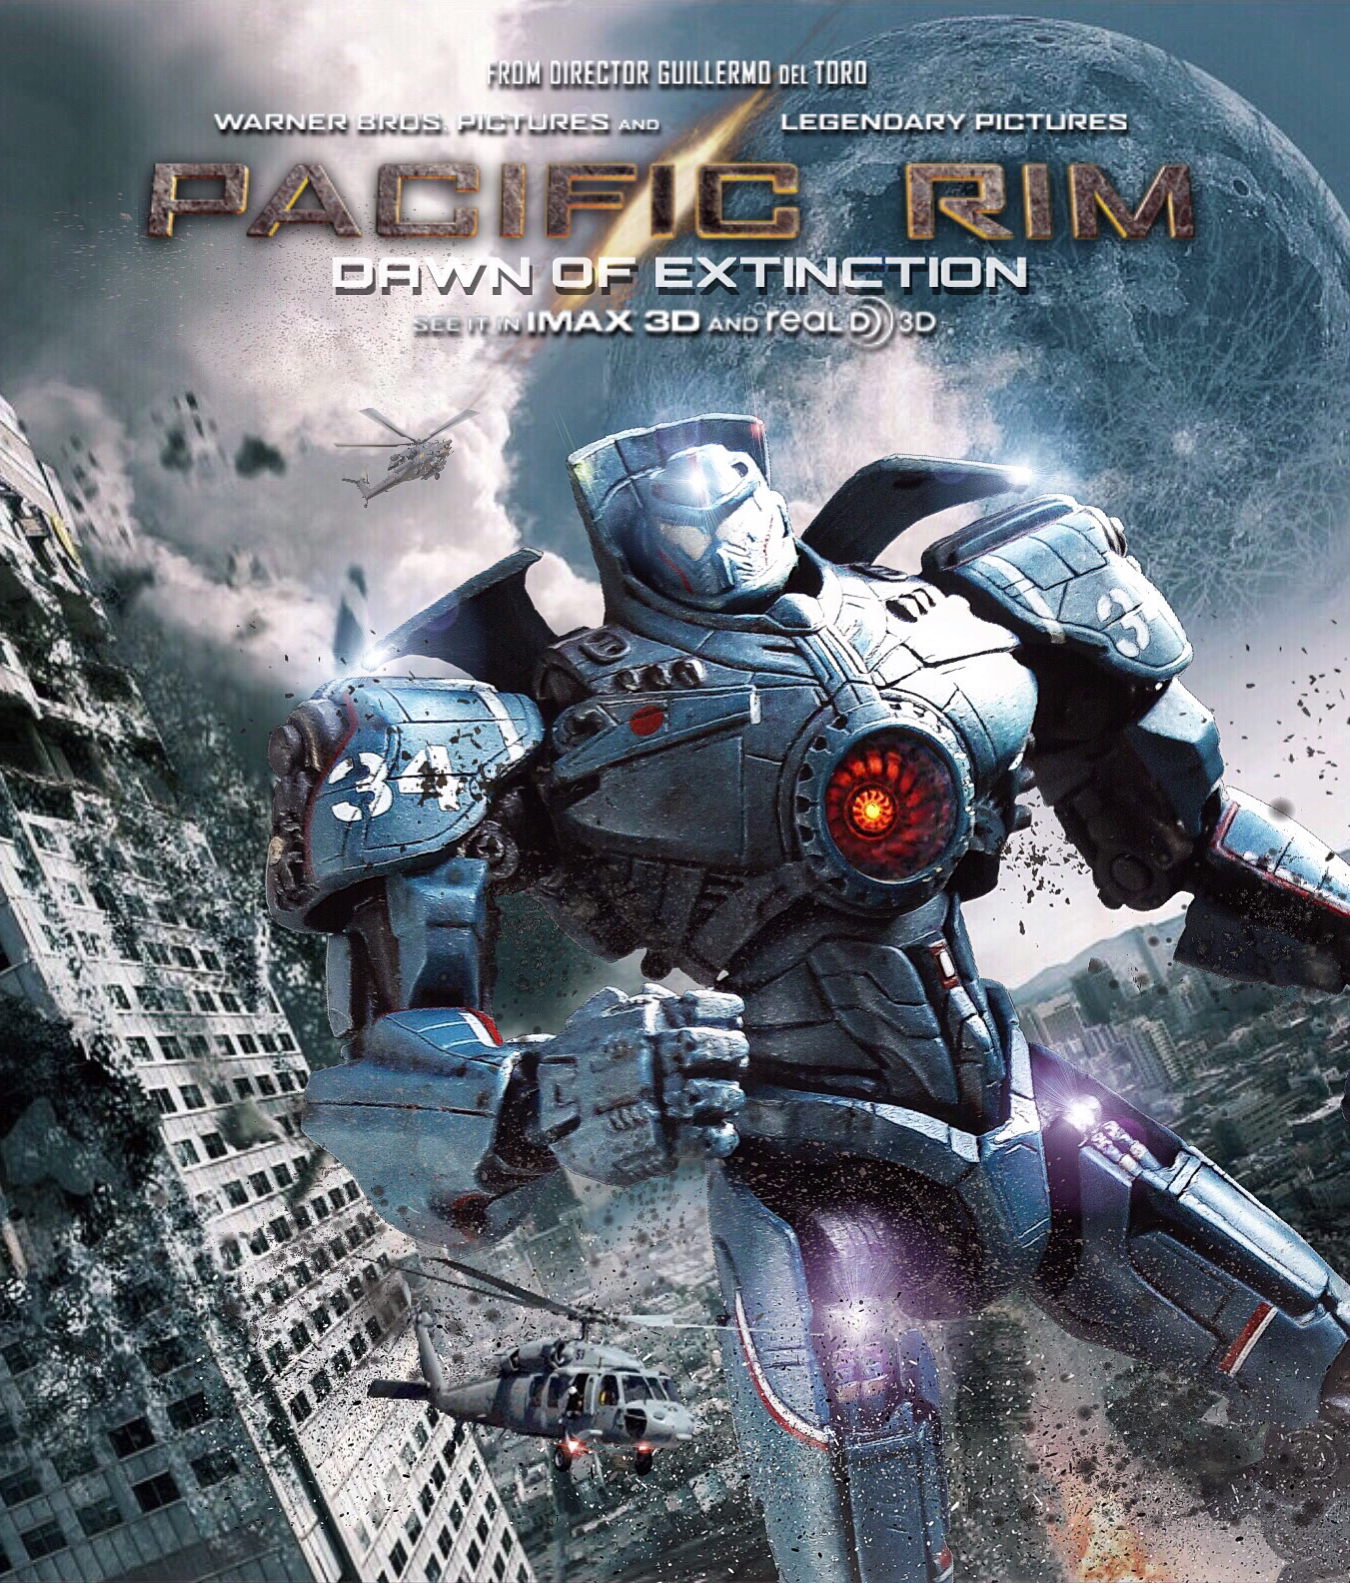 PACIFIC RIM DAWN OF EXTINCTION MOVIE POSTER. 7 Inch NECA ... Pacific Rim Gipsy Danger Poster